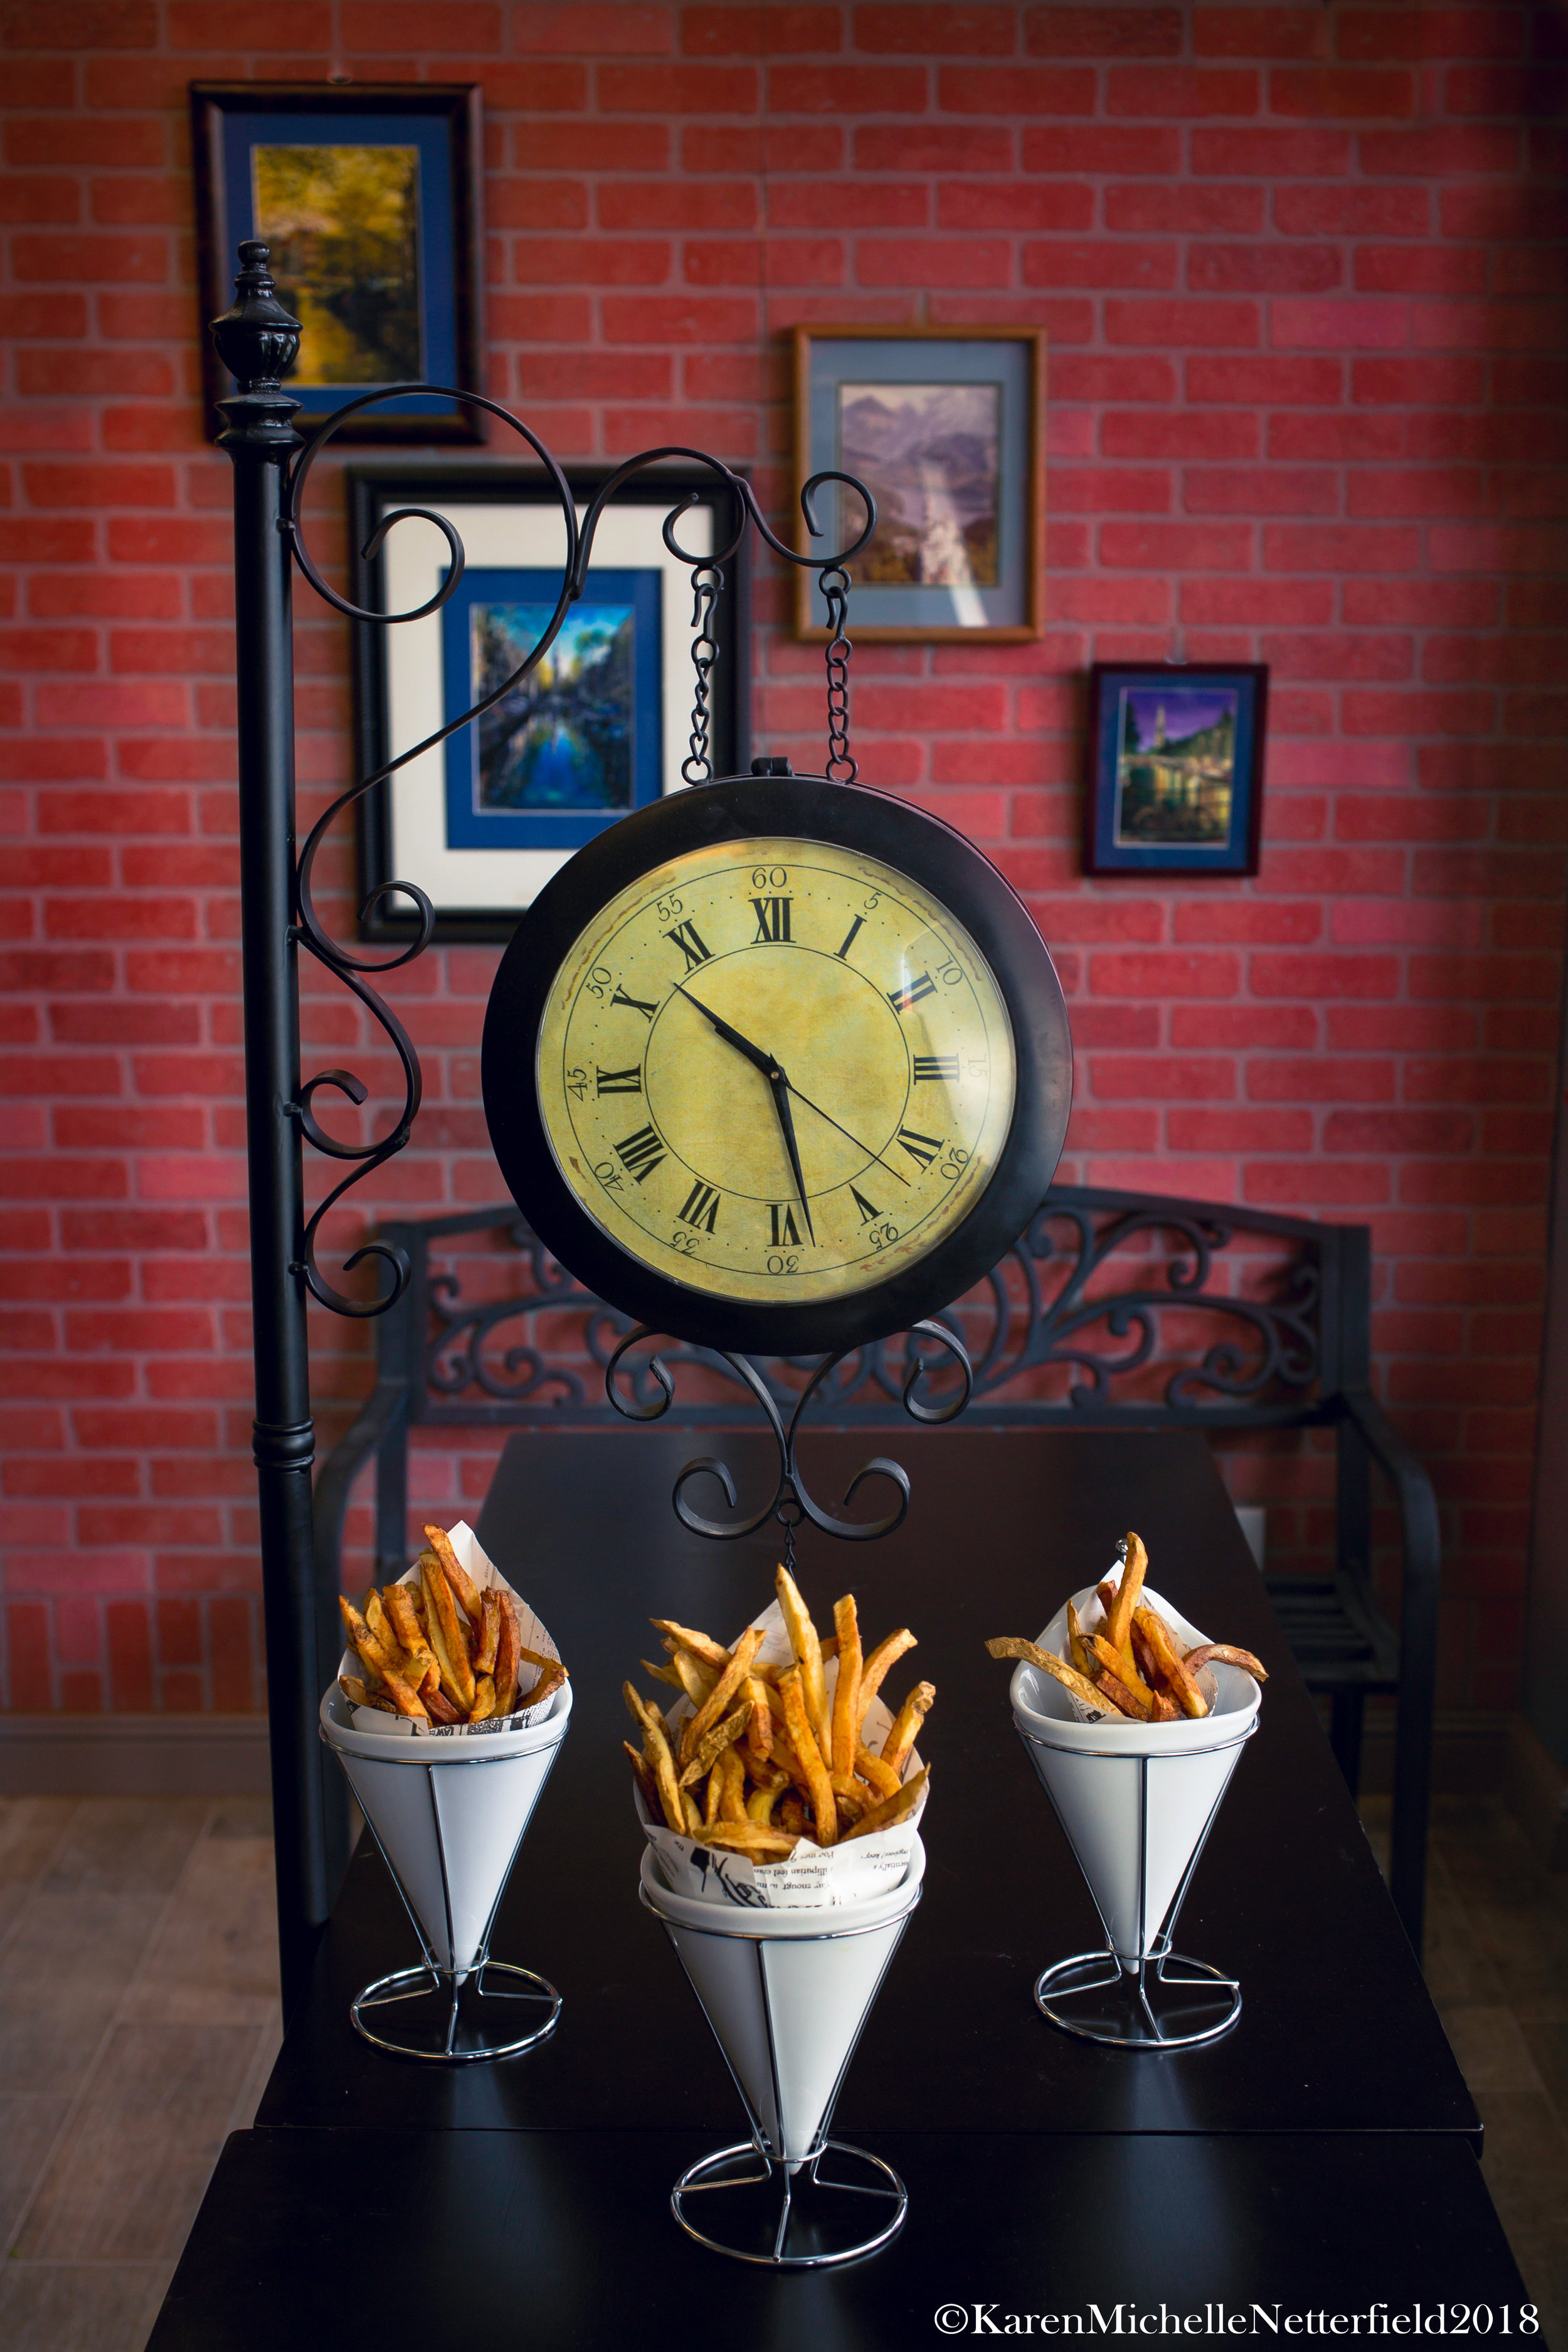 Frites_The_House_of_Frites_Lunch_ Special_1©KarenMichelleNetterfield2018.jpg